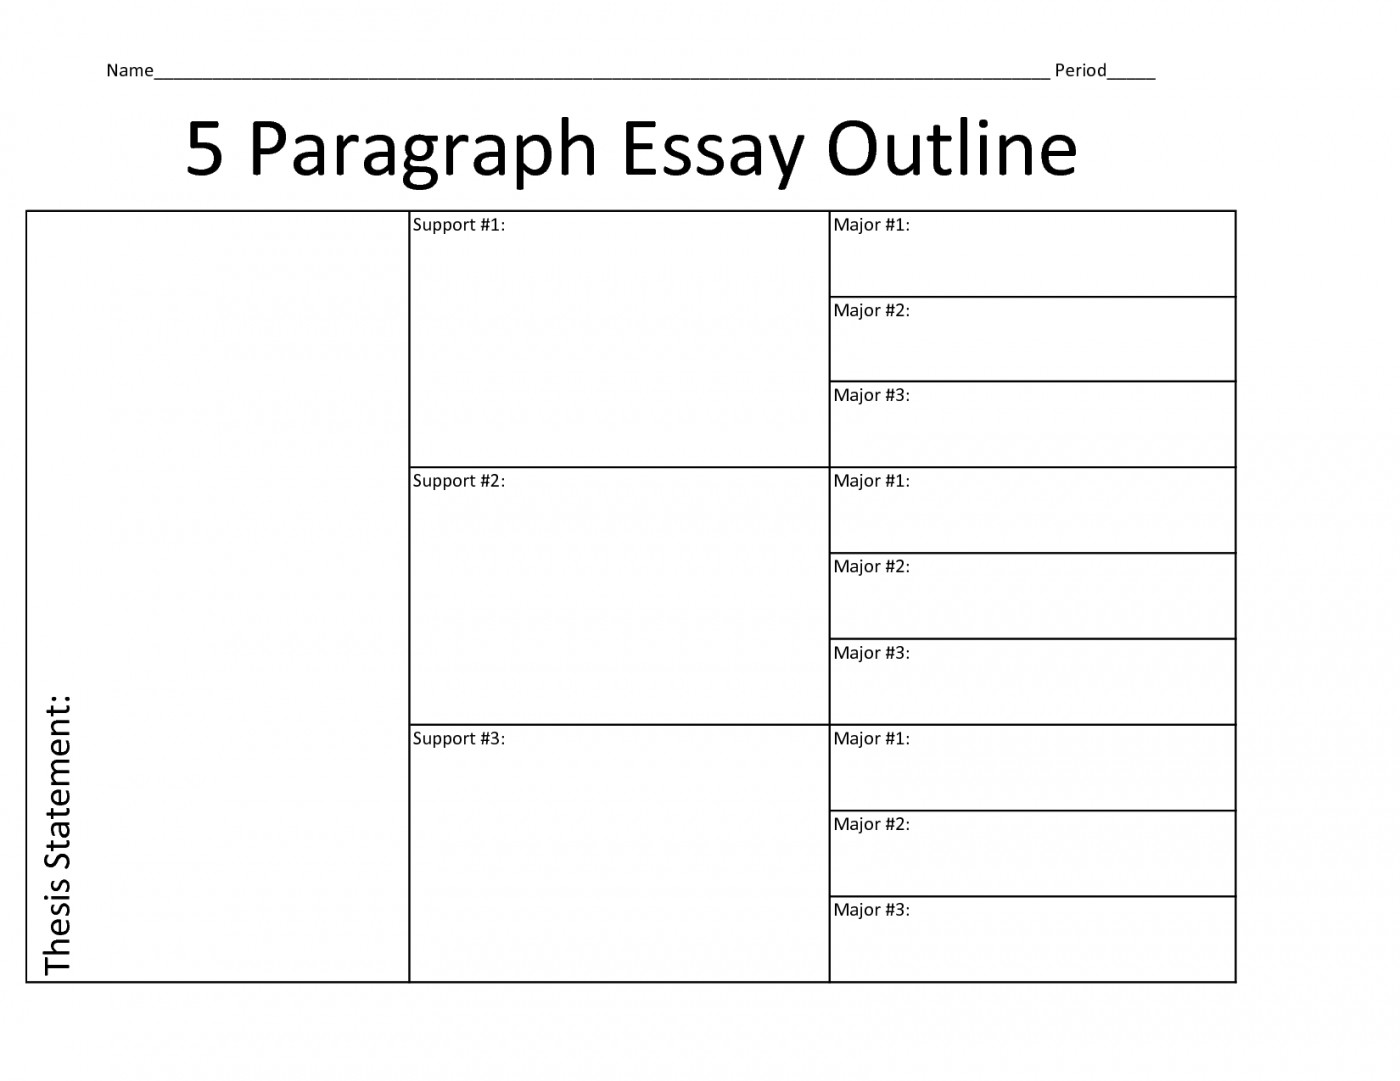 019 Graphic Organizers Executive Functioning Mr Brown039s Paragraph Essay Outline L Amazing 5 Google Doc Printable High School 1400